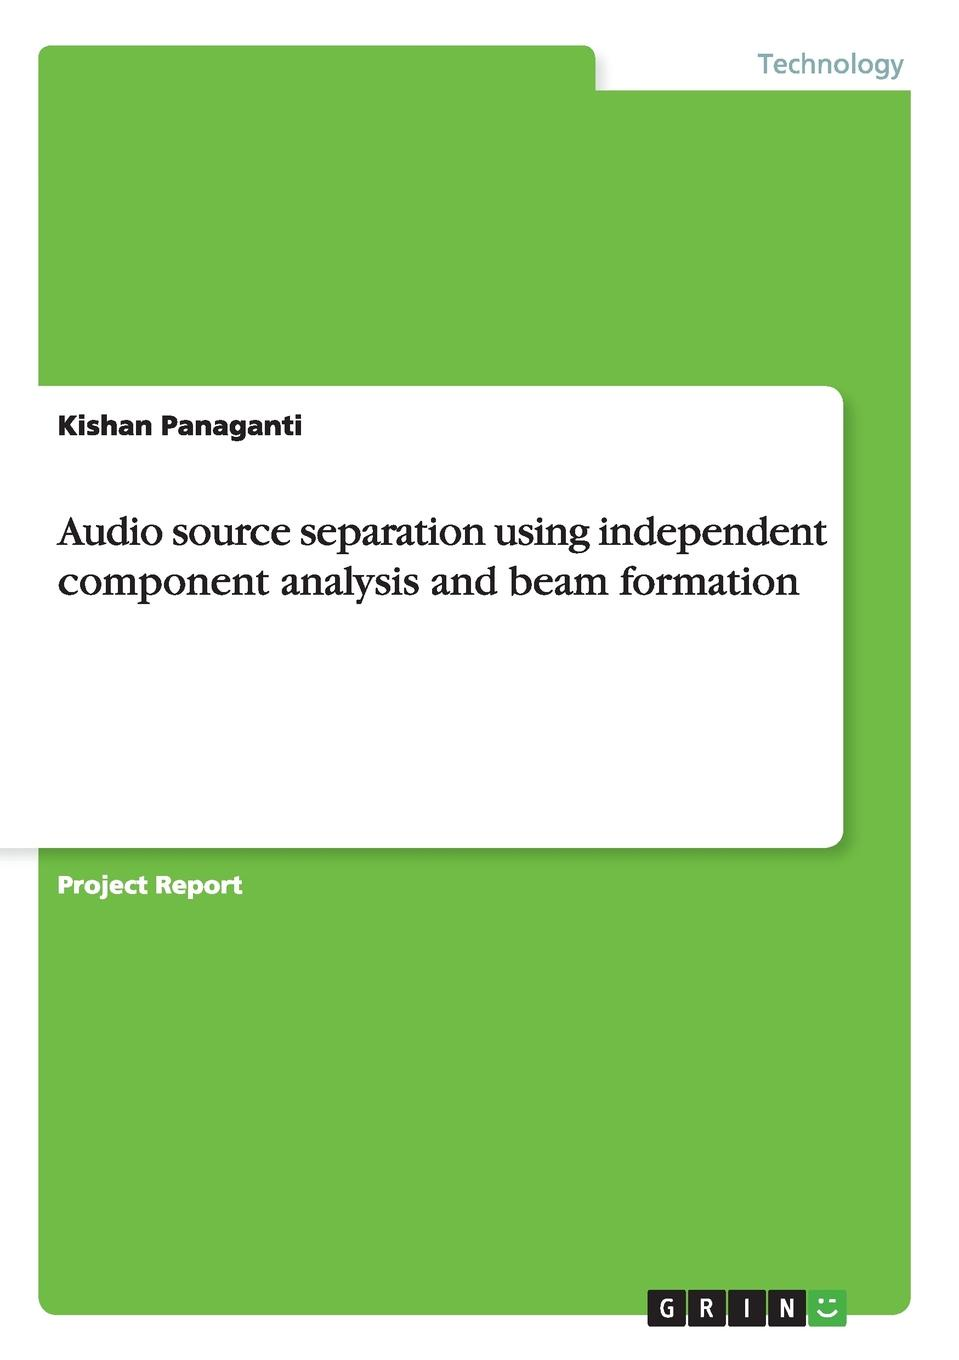 Kishan Panaganti Audio source separation using independent component analysis and beam formation detection and classification of masses in mammograms using ica